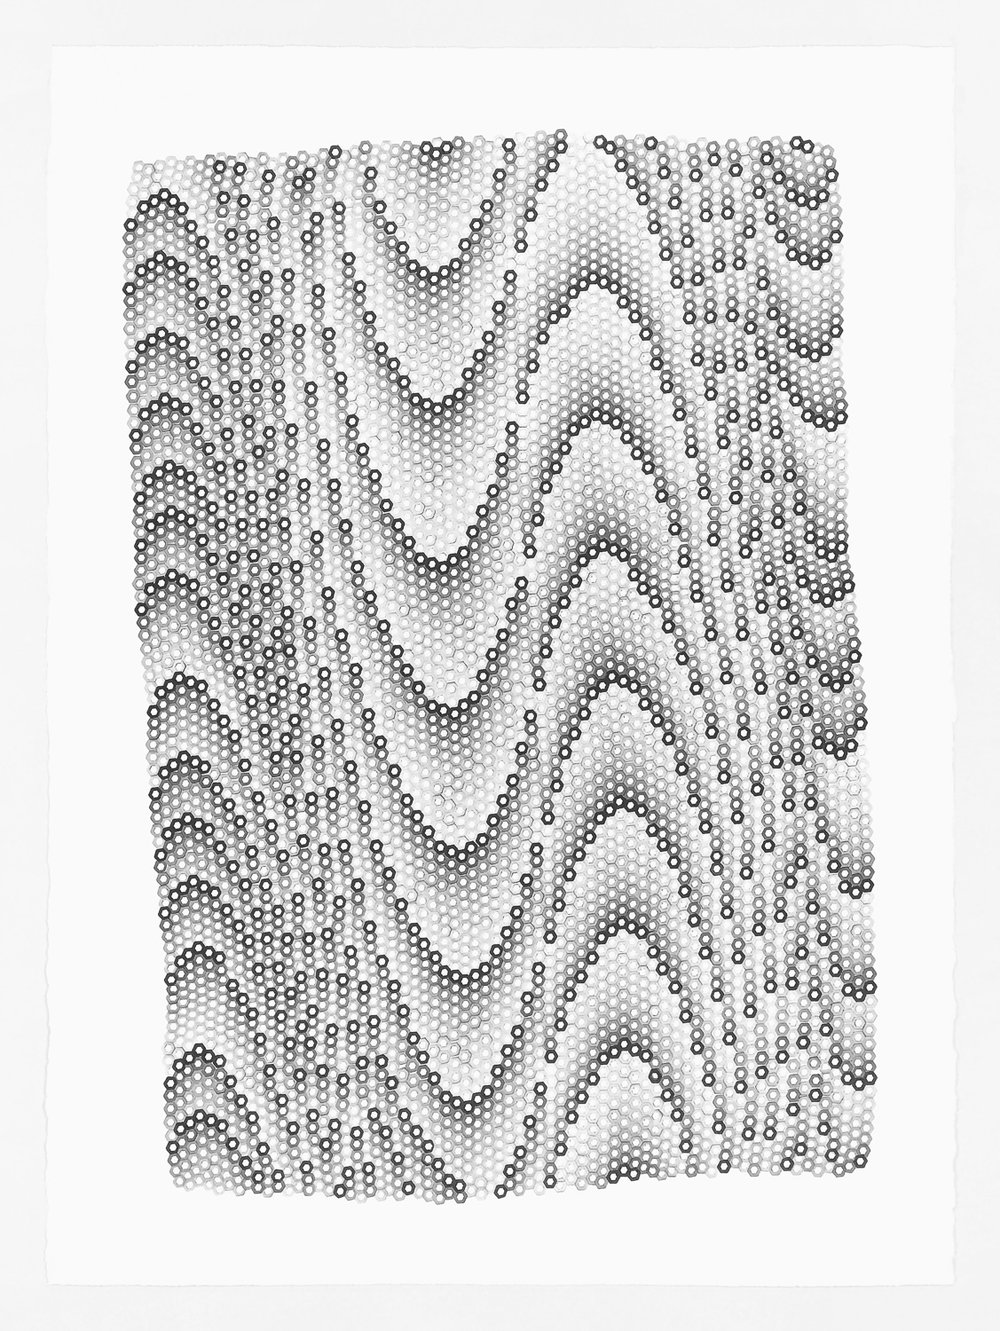 Hexagons 7 ,  2018   stamped archival ink on 140 lb hot press watercolor paper 30 x 22 in (76.2 x 55.9 cm)